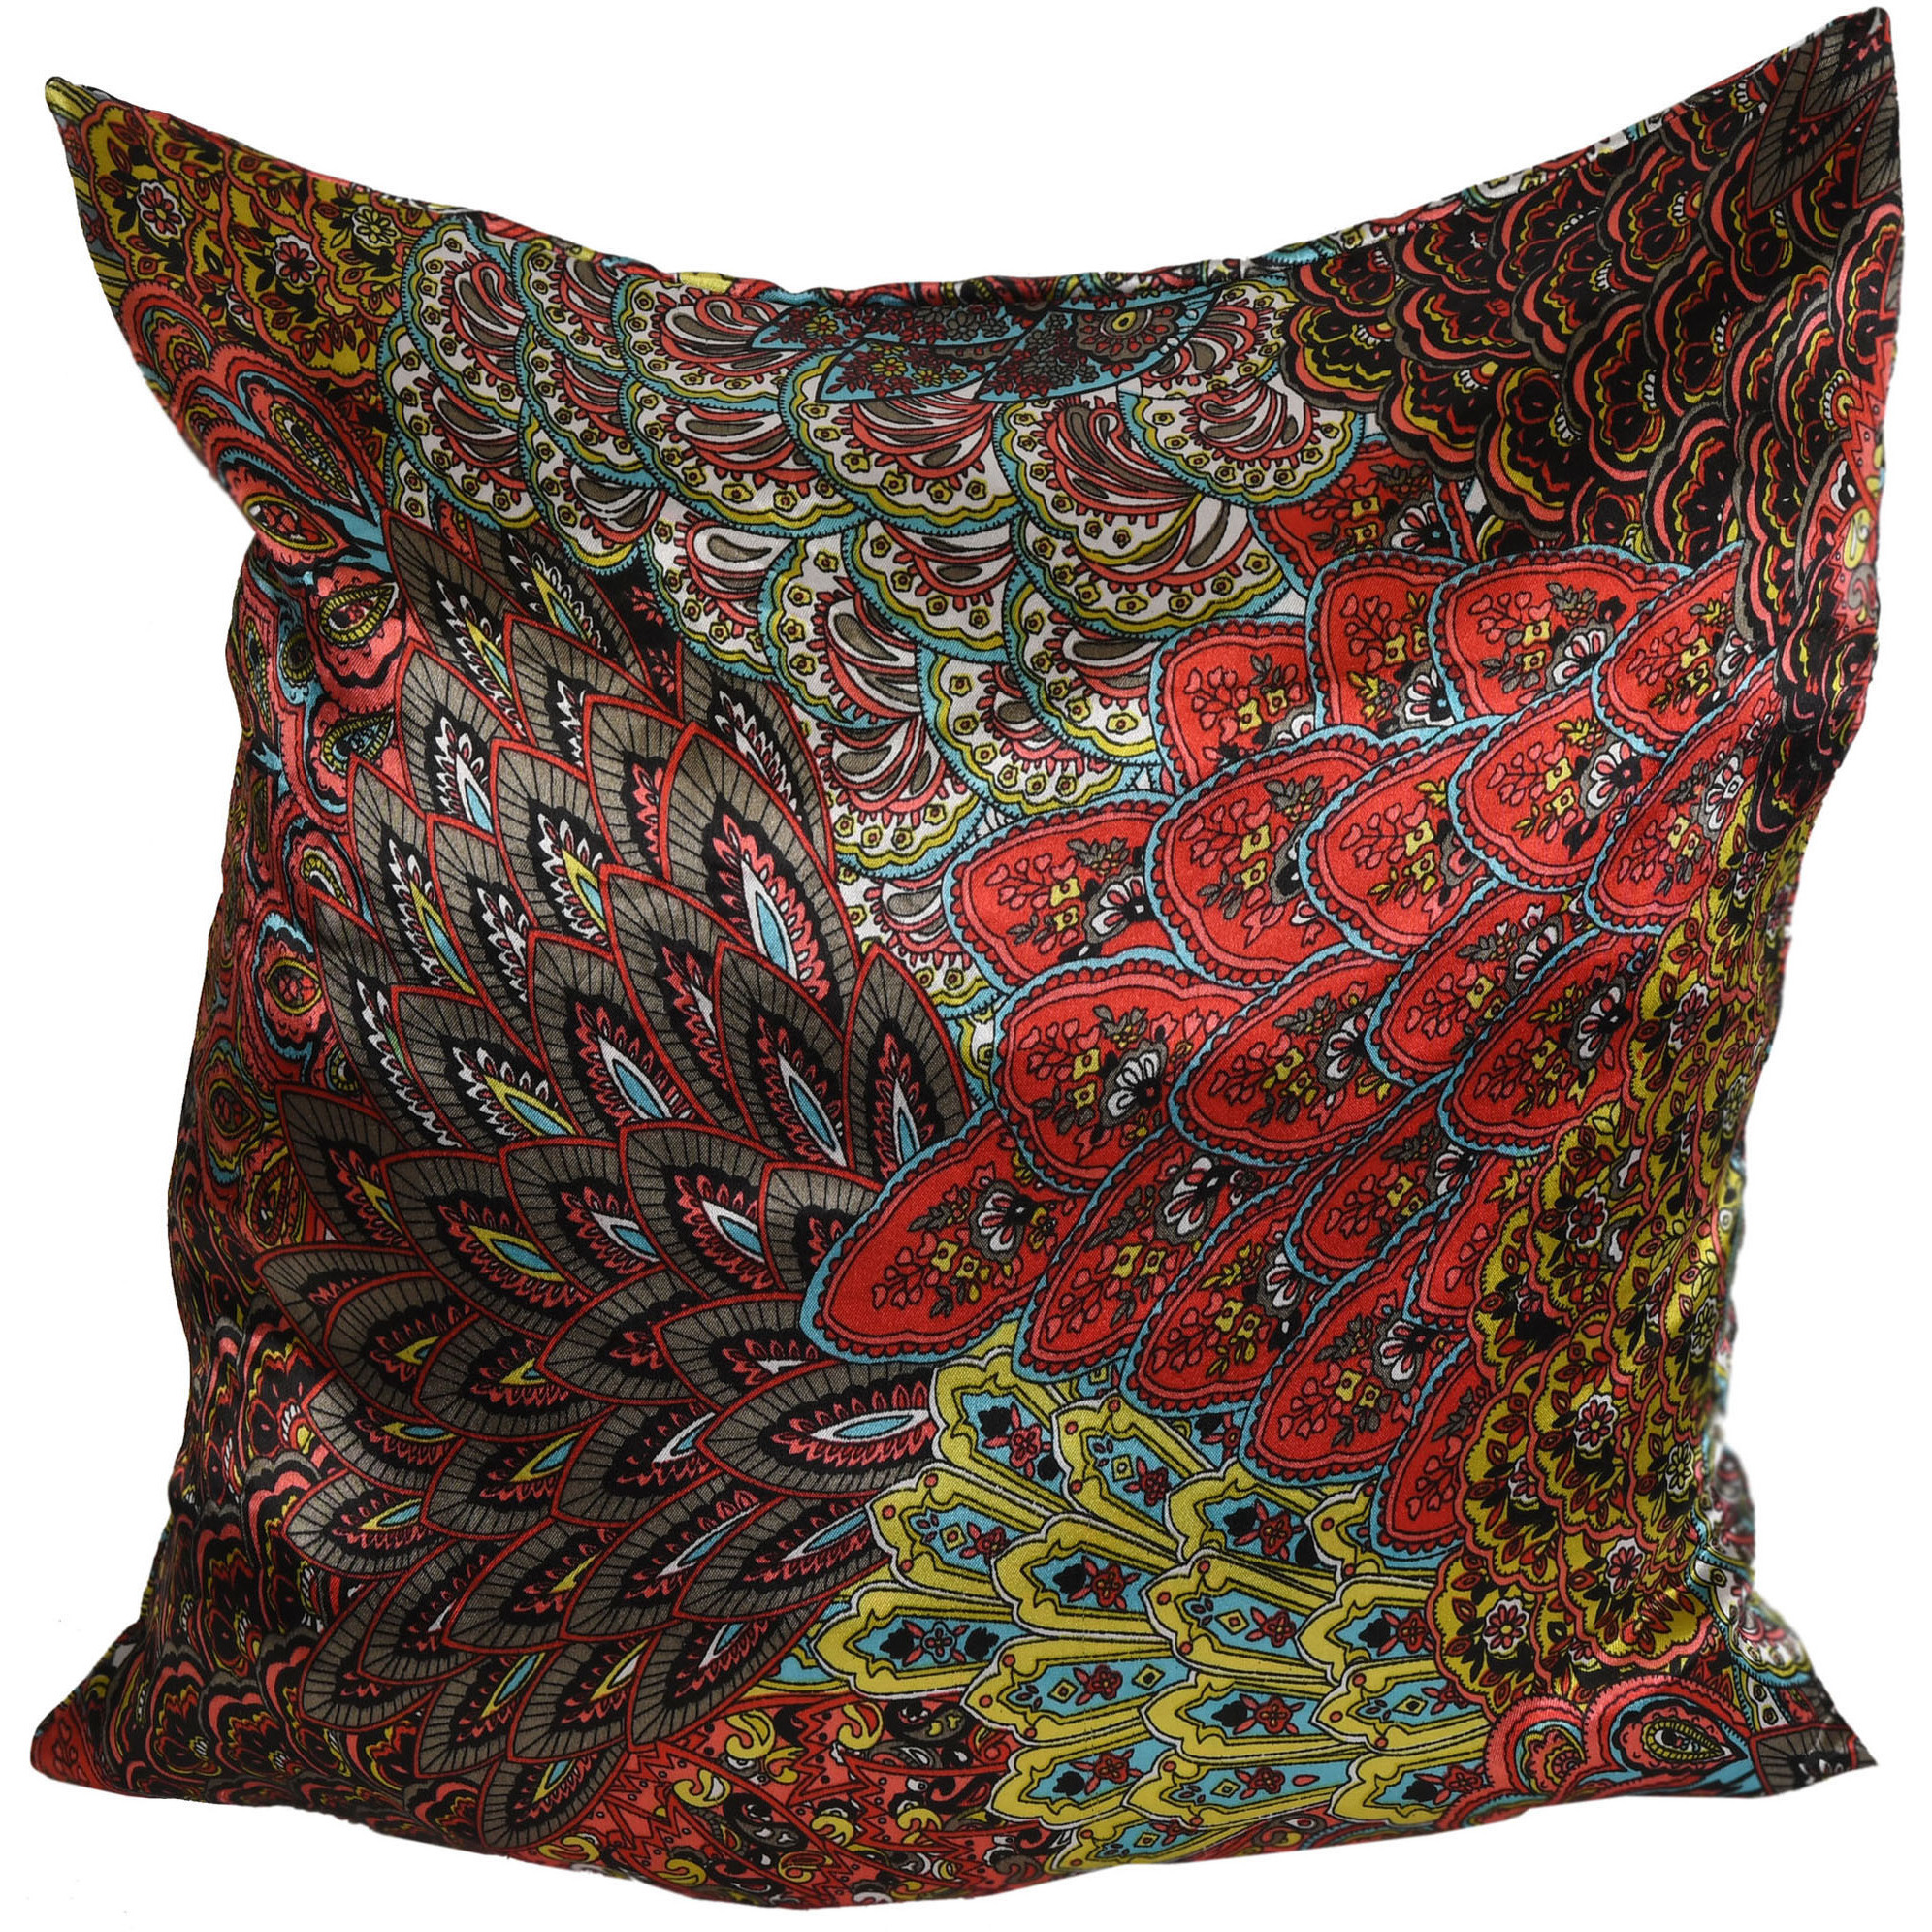 Floral Printed Cushion Cover